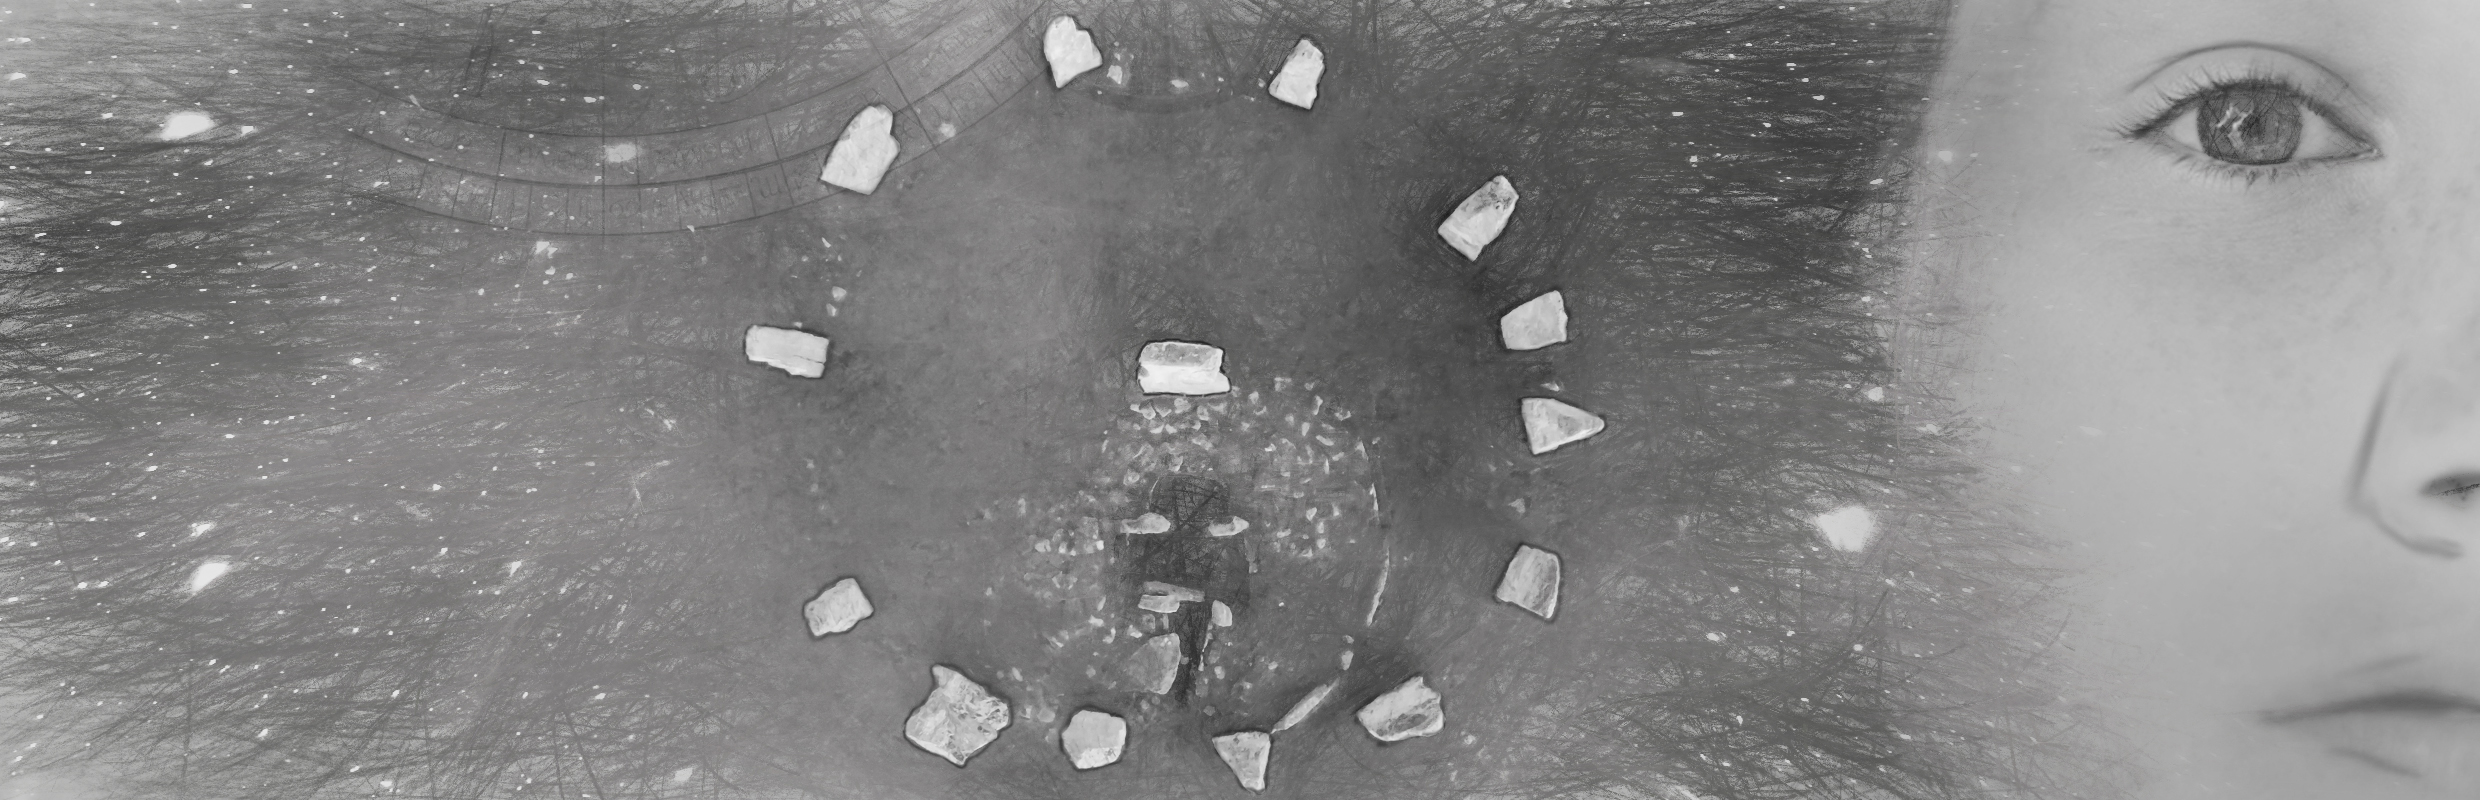 standing-stones-from-above-bw-1